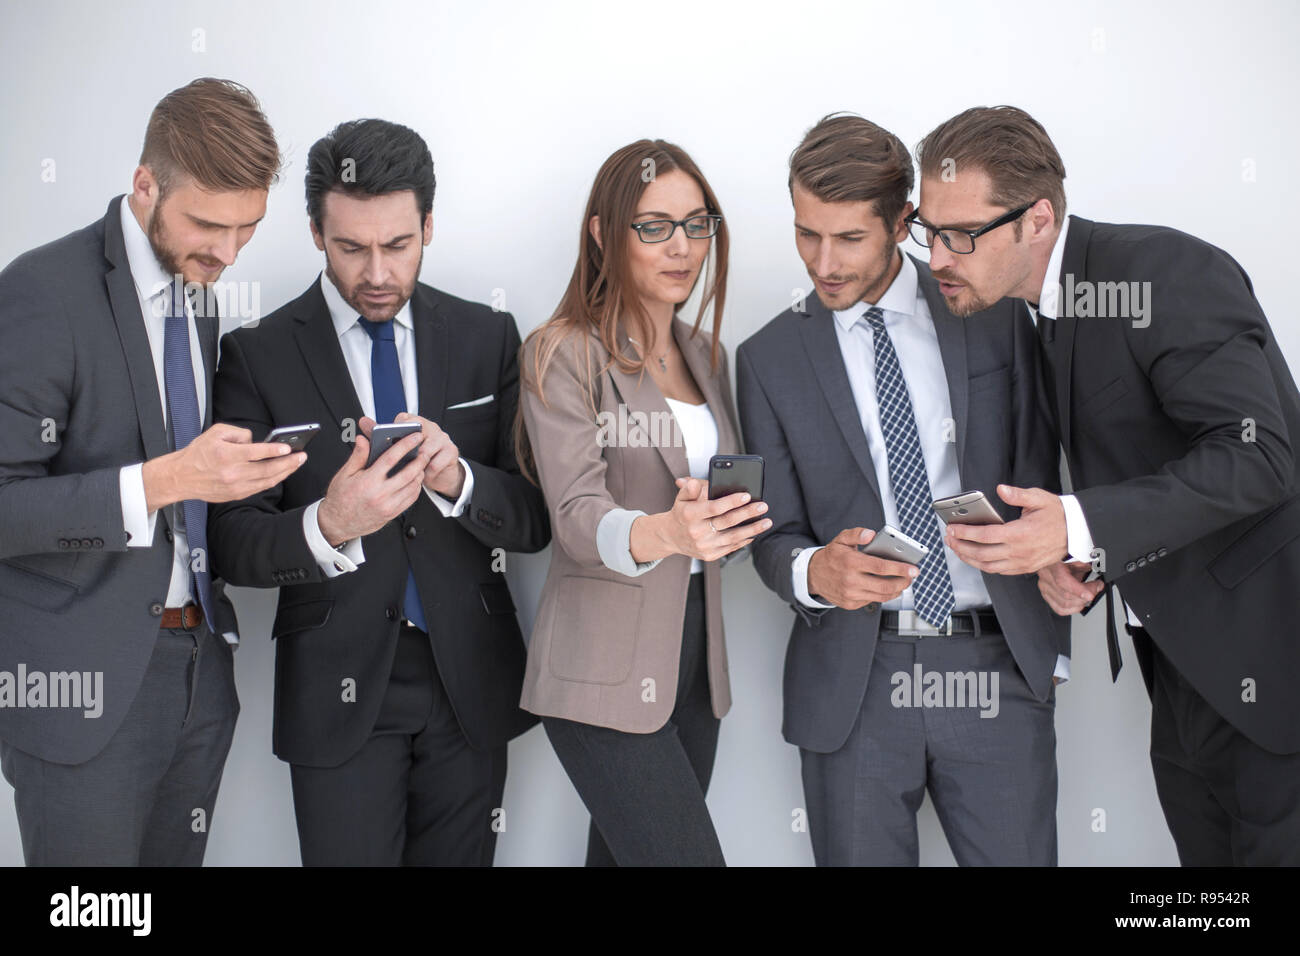 group of business people reading SMS - Stock Image